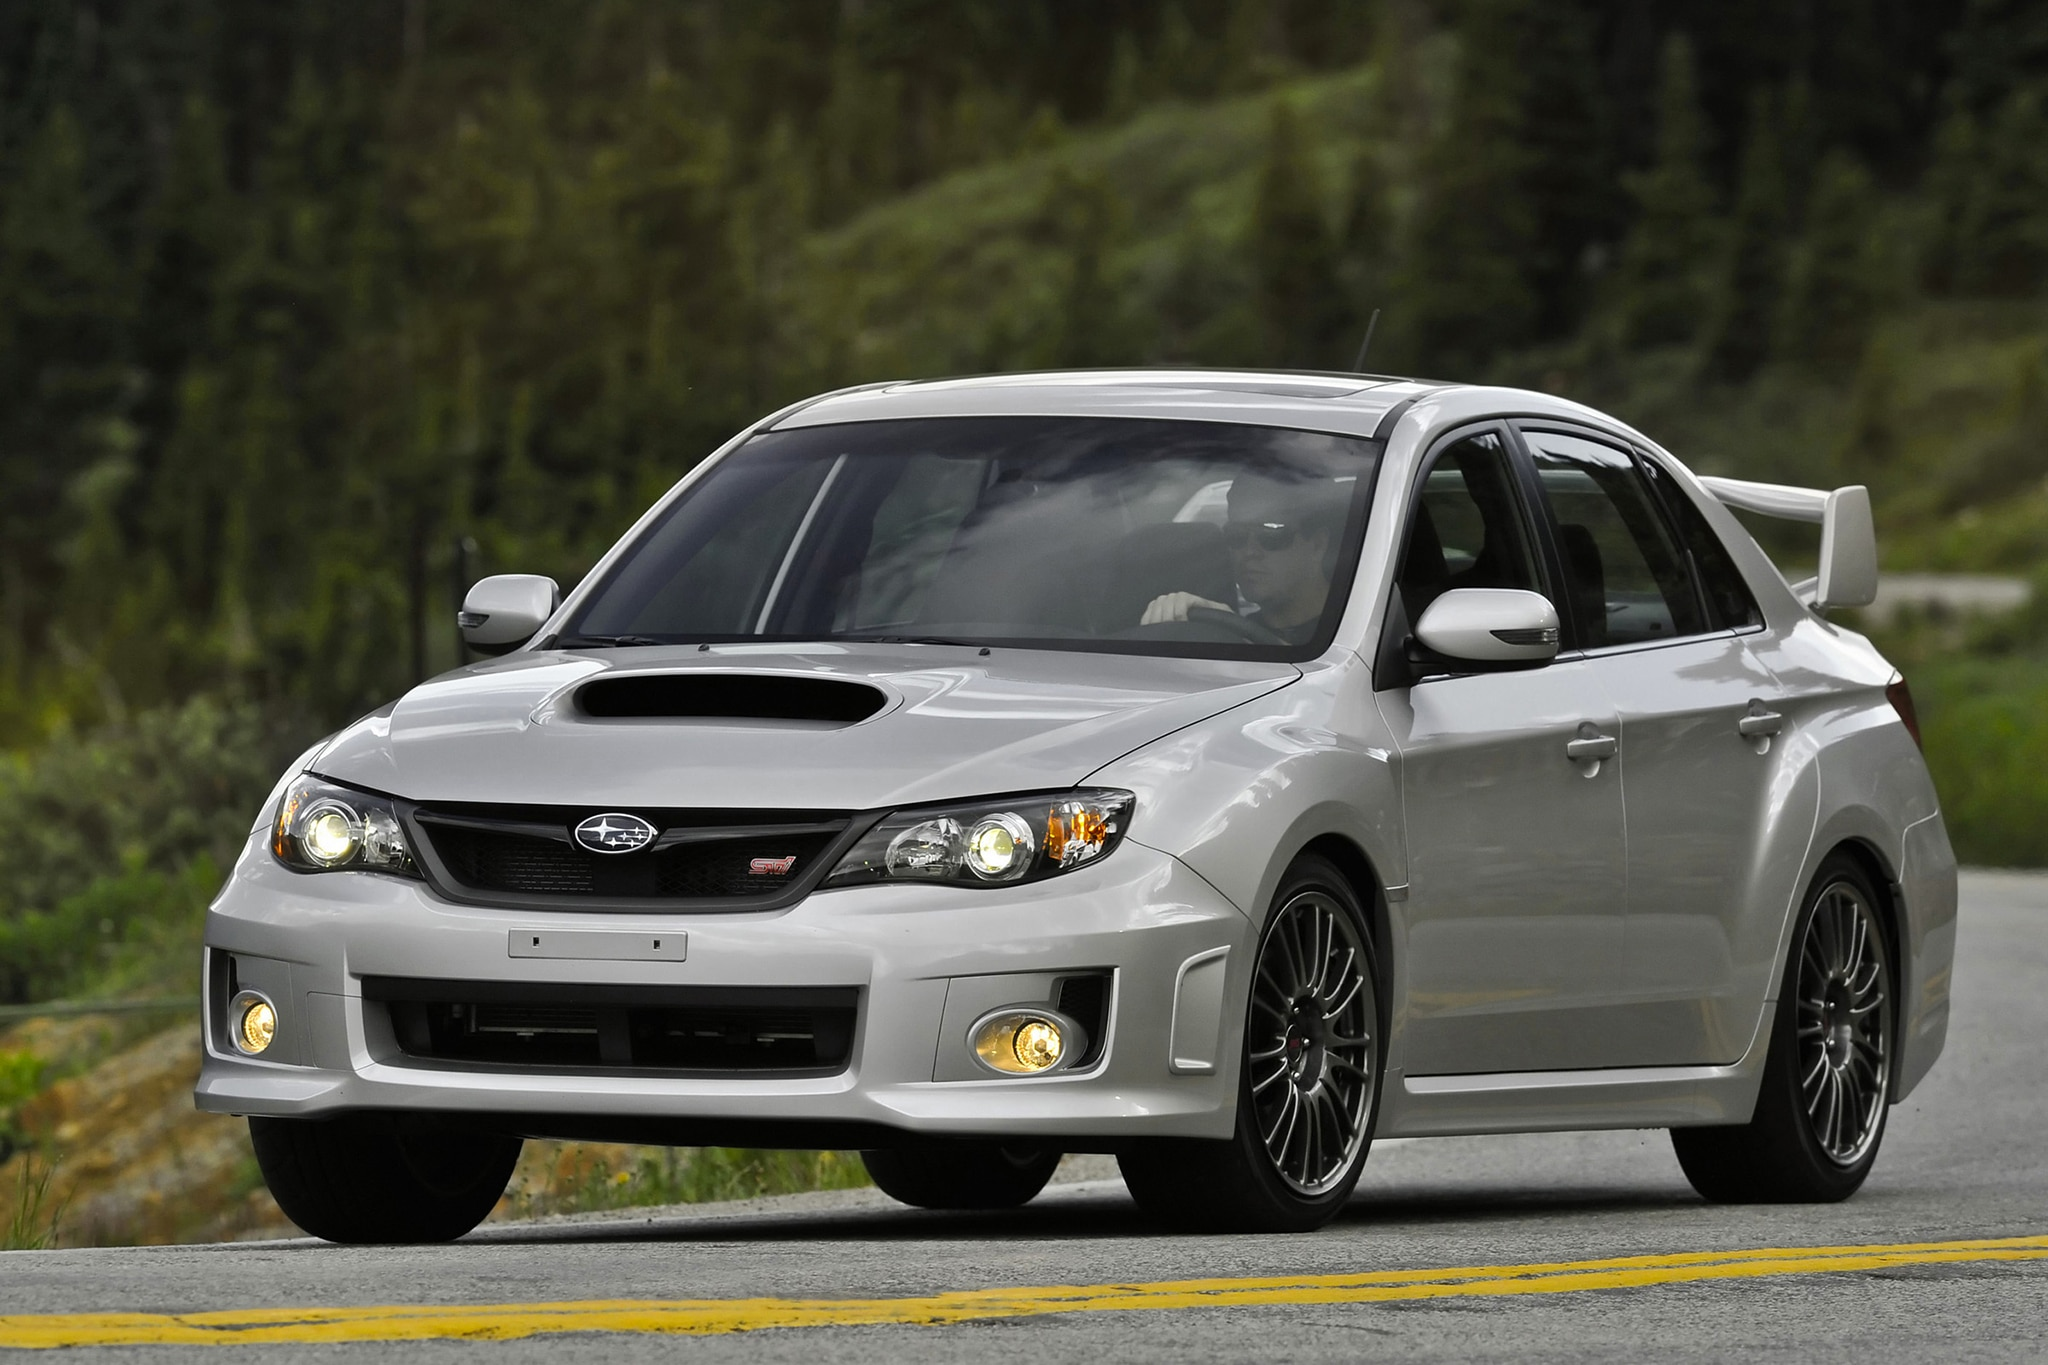 priced 2013 subaru wrx sti special edition at 35 565 wrx se at 29 565. Black Bedroom Furniture Sets. Home Design Ideas